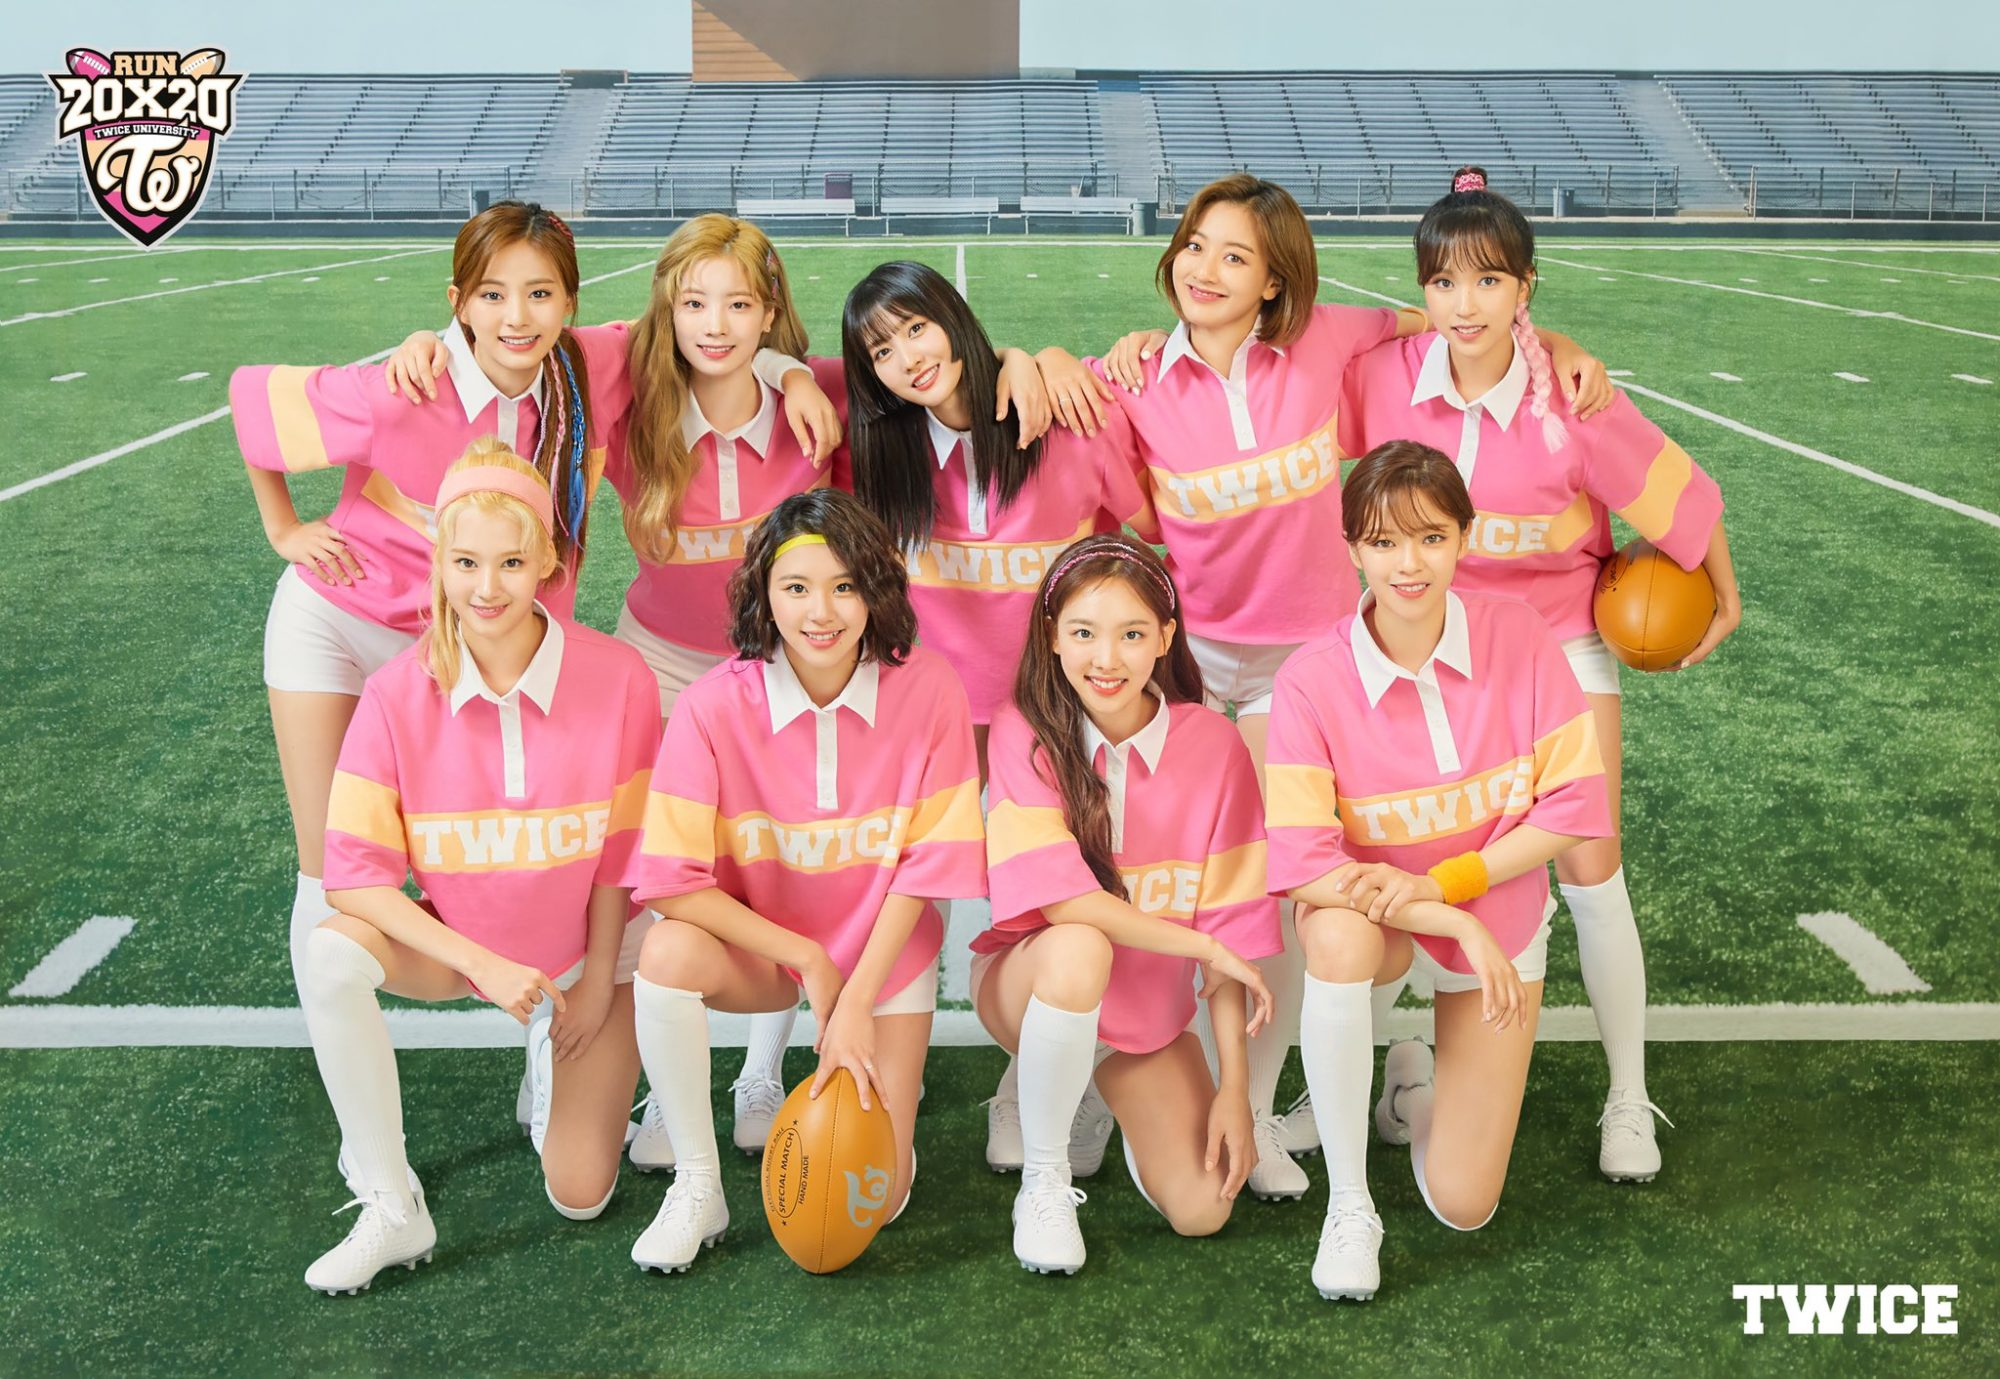 TWICE Season's Greetings 2020 Twice University Rugby Team Group